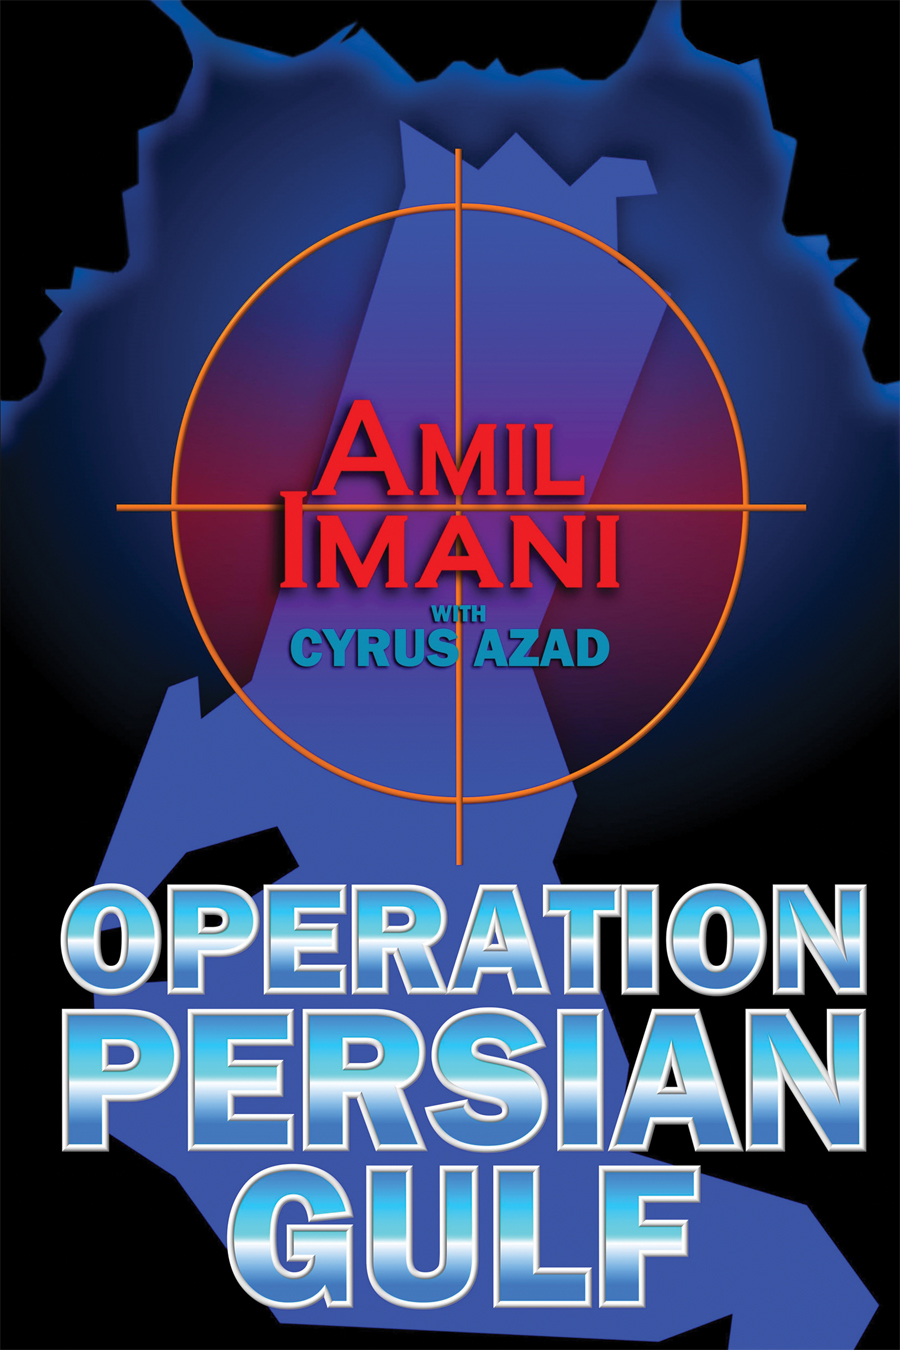 Operation Persian Gulf by Amil Imani, front cover image